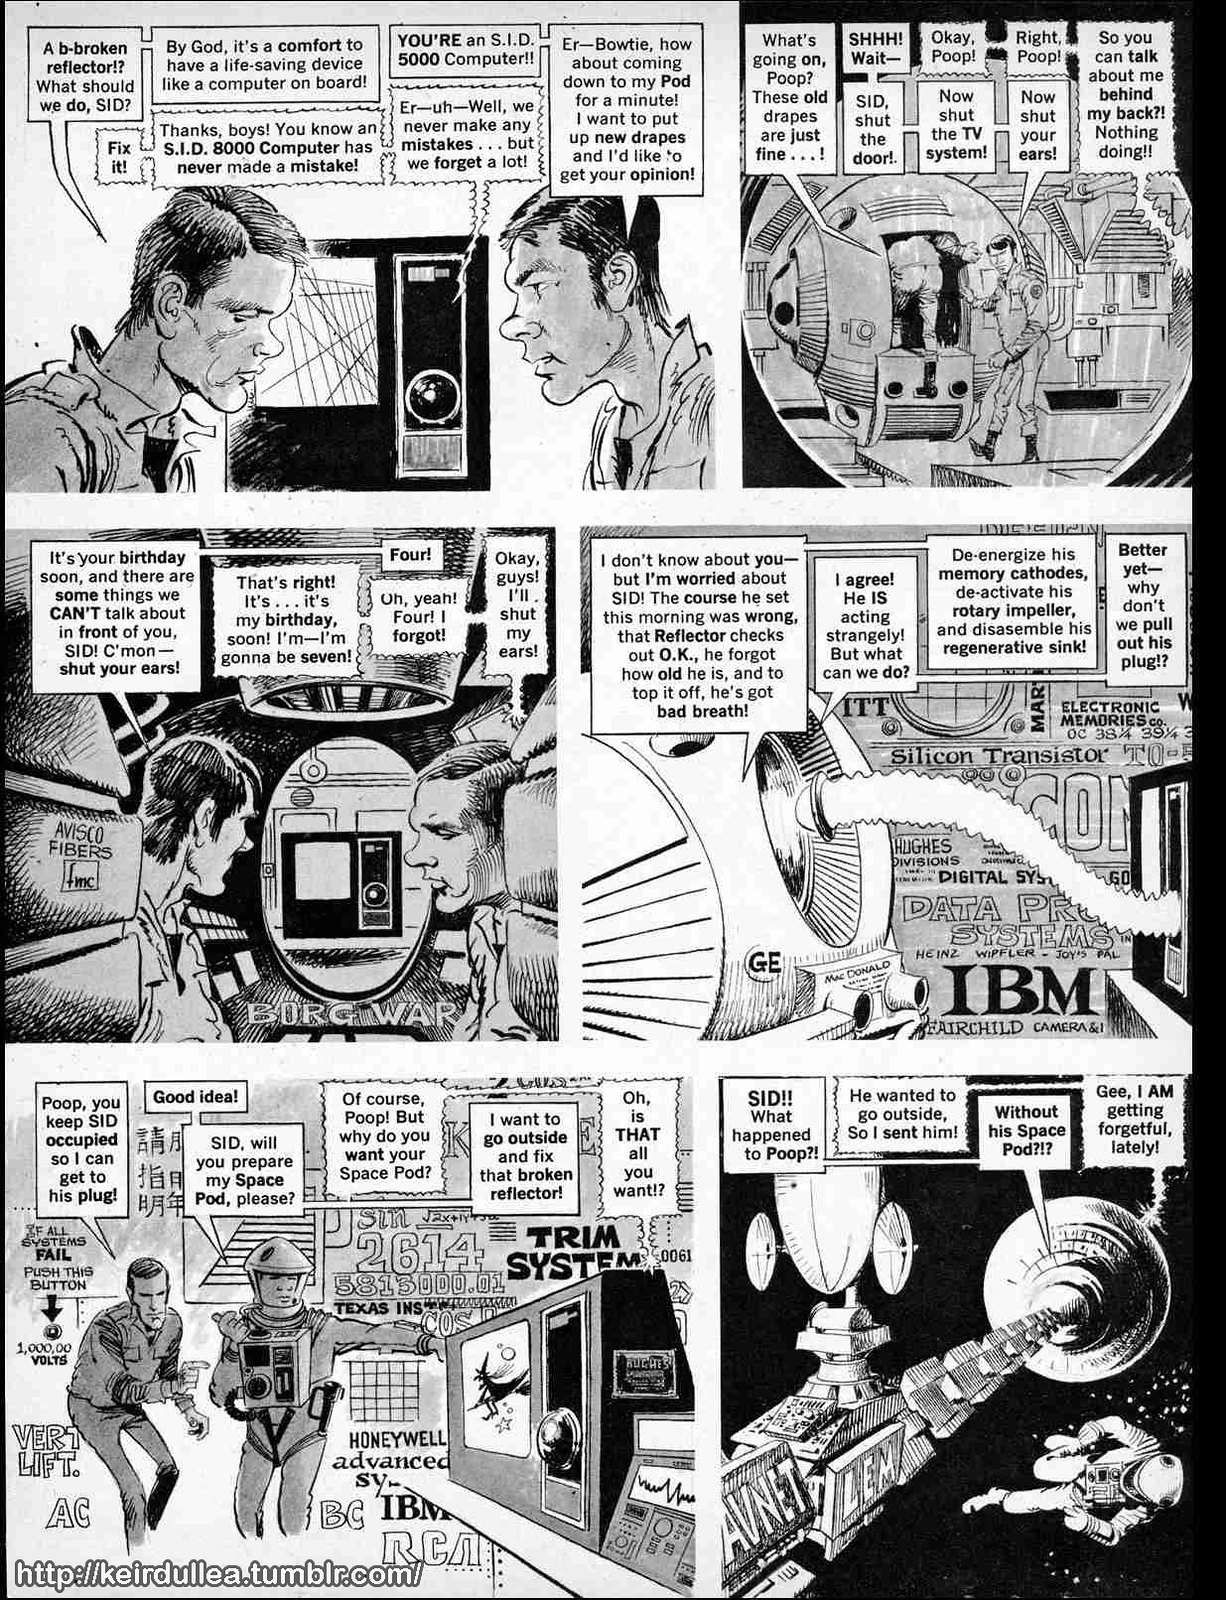 """Keir Dullea YEAH!!! - """"201 Minutes of Space Idiocy"""" A Mad Magazine ..."""